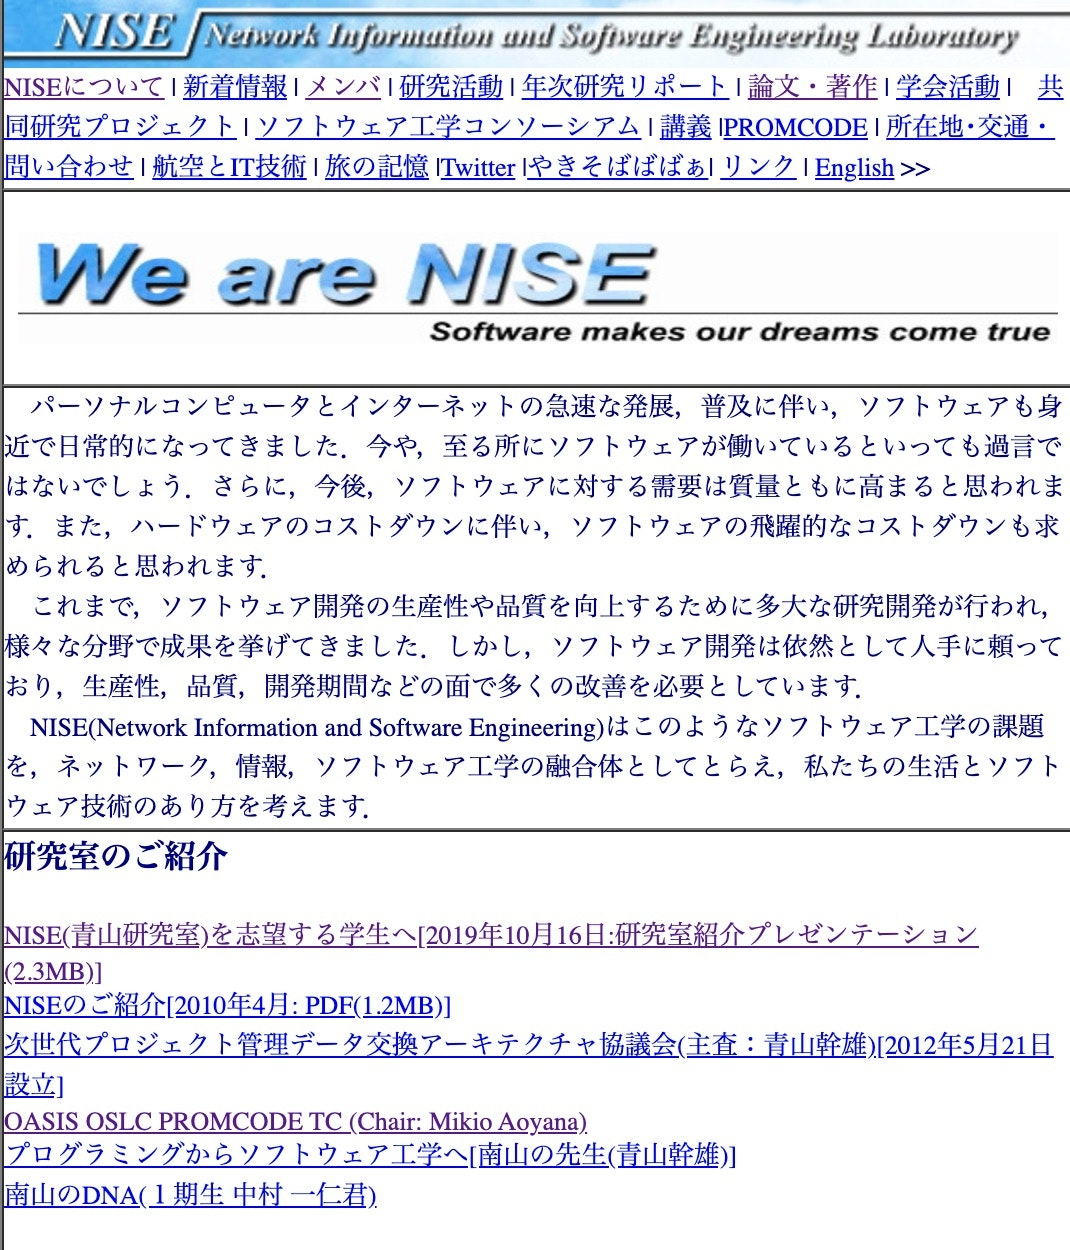 NISE_Network_Information_and_Software_Engineering_Laboratory__NISEについて_.jpg